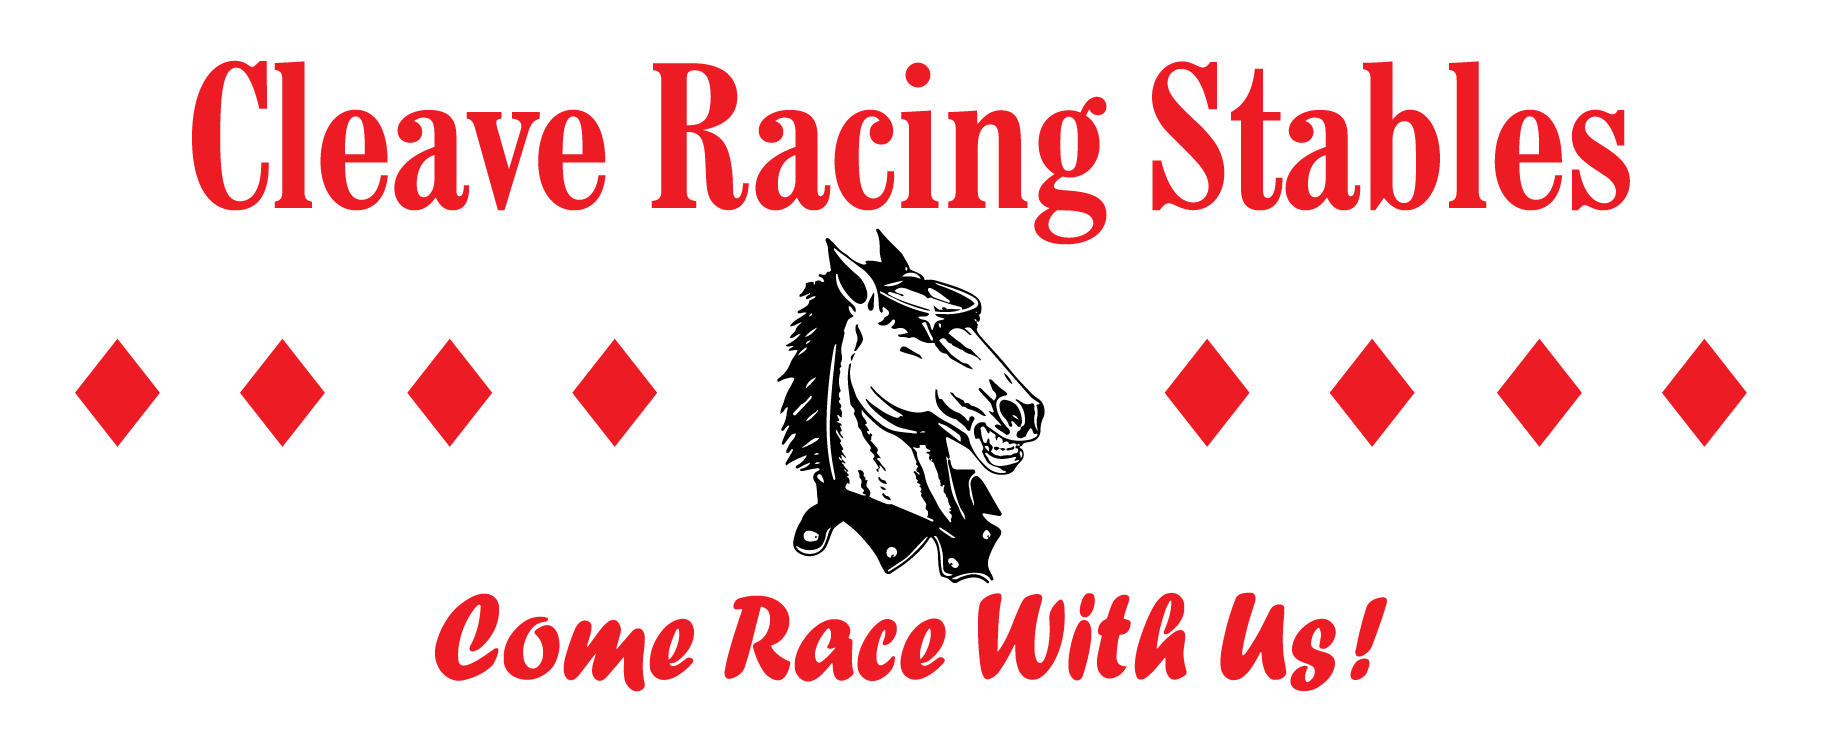 Cleave Racing Stables